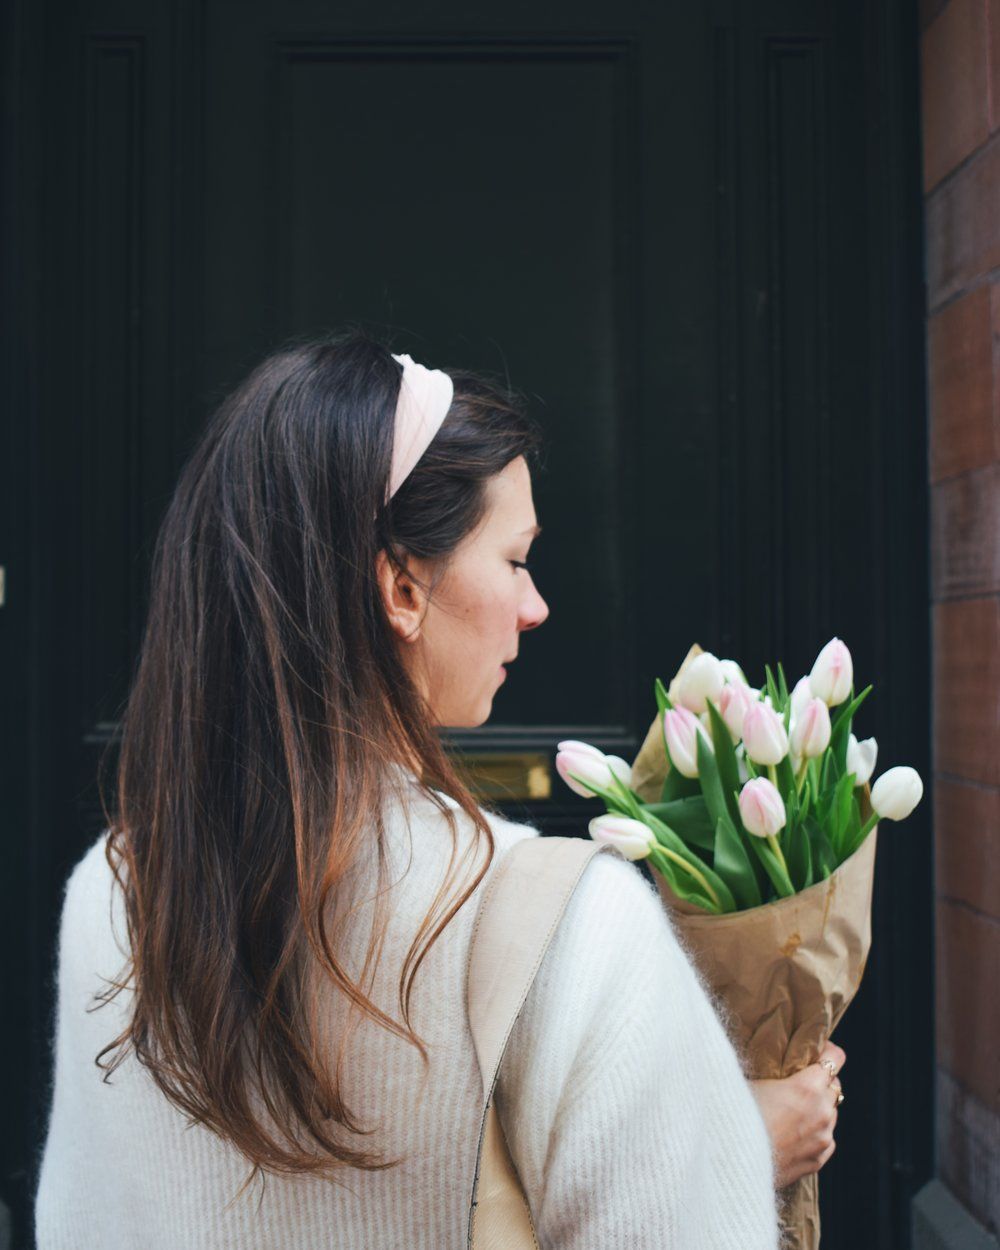 6 comforting thoughts about getting older- standing in front of a green door with tulips and hair band in a white knitted sweater